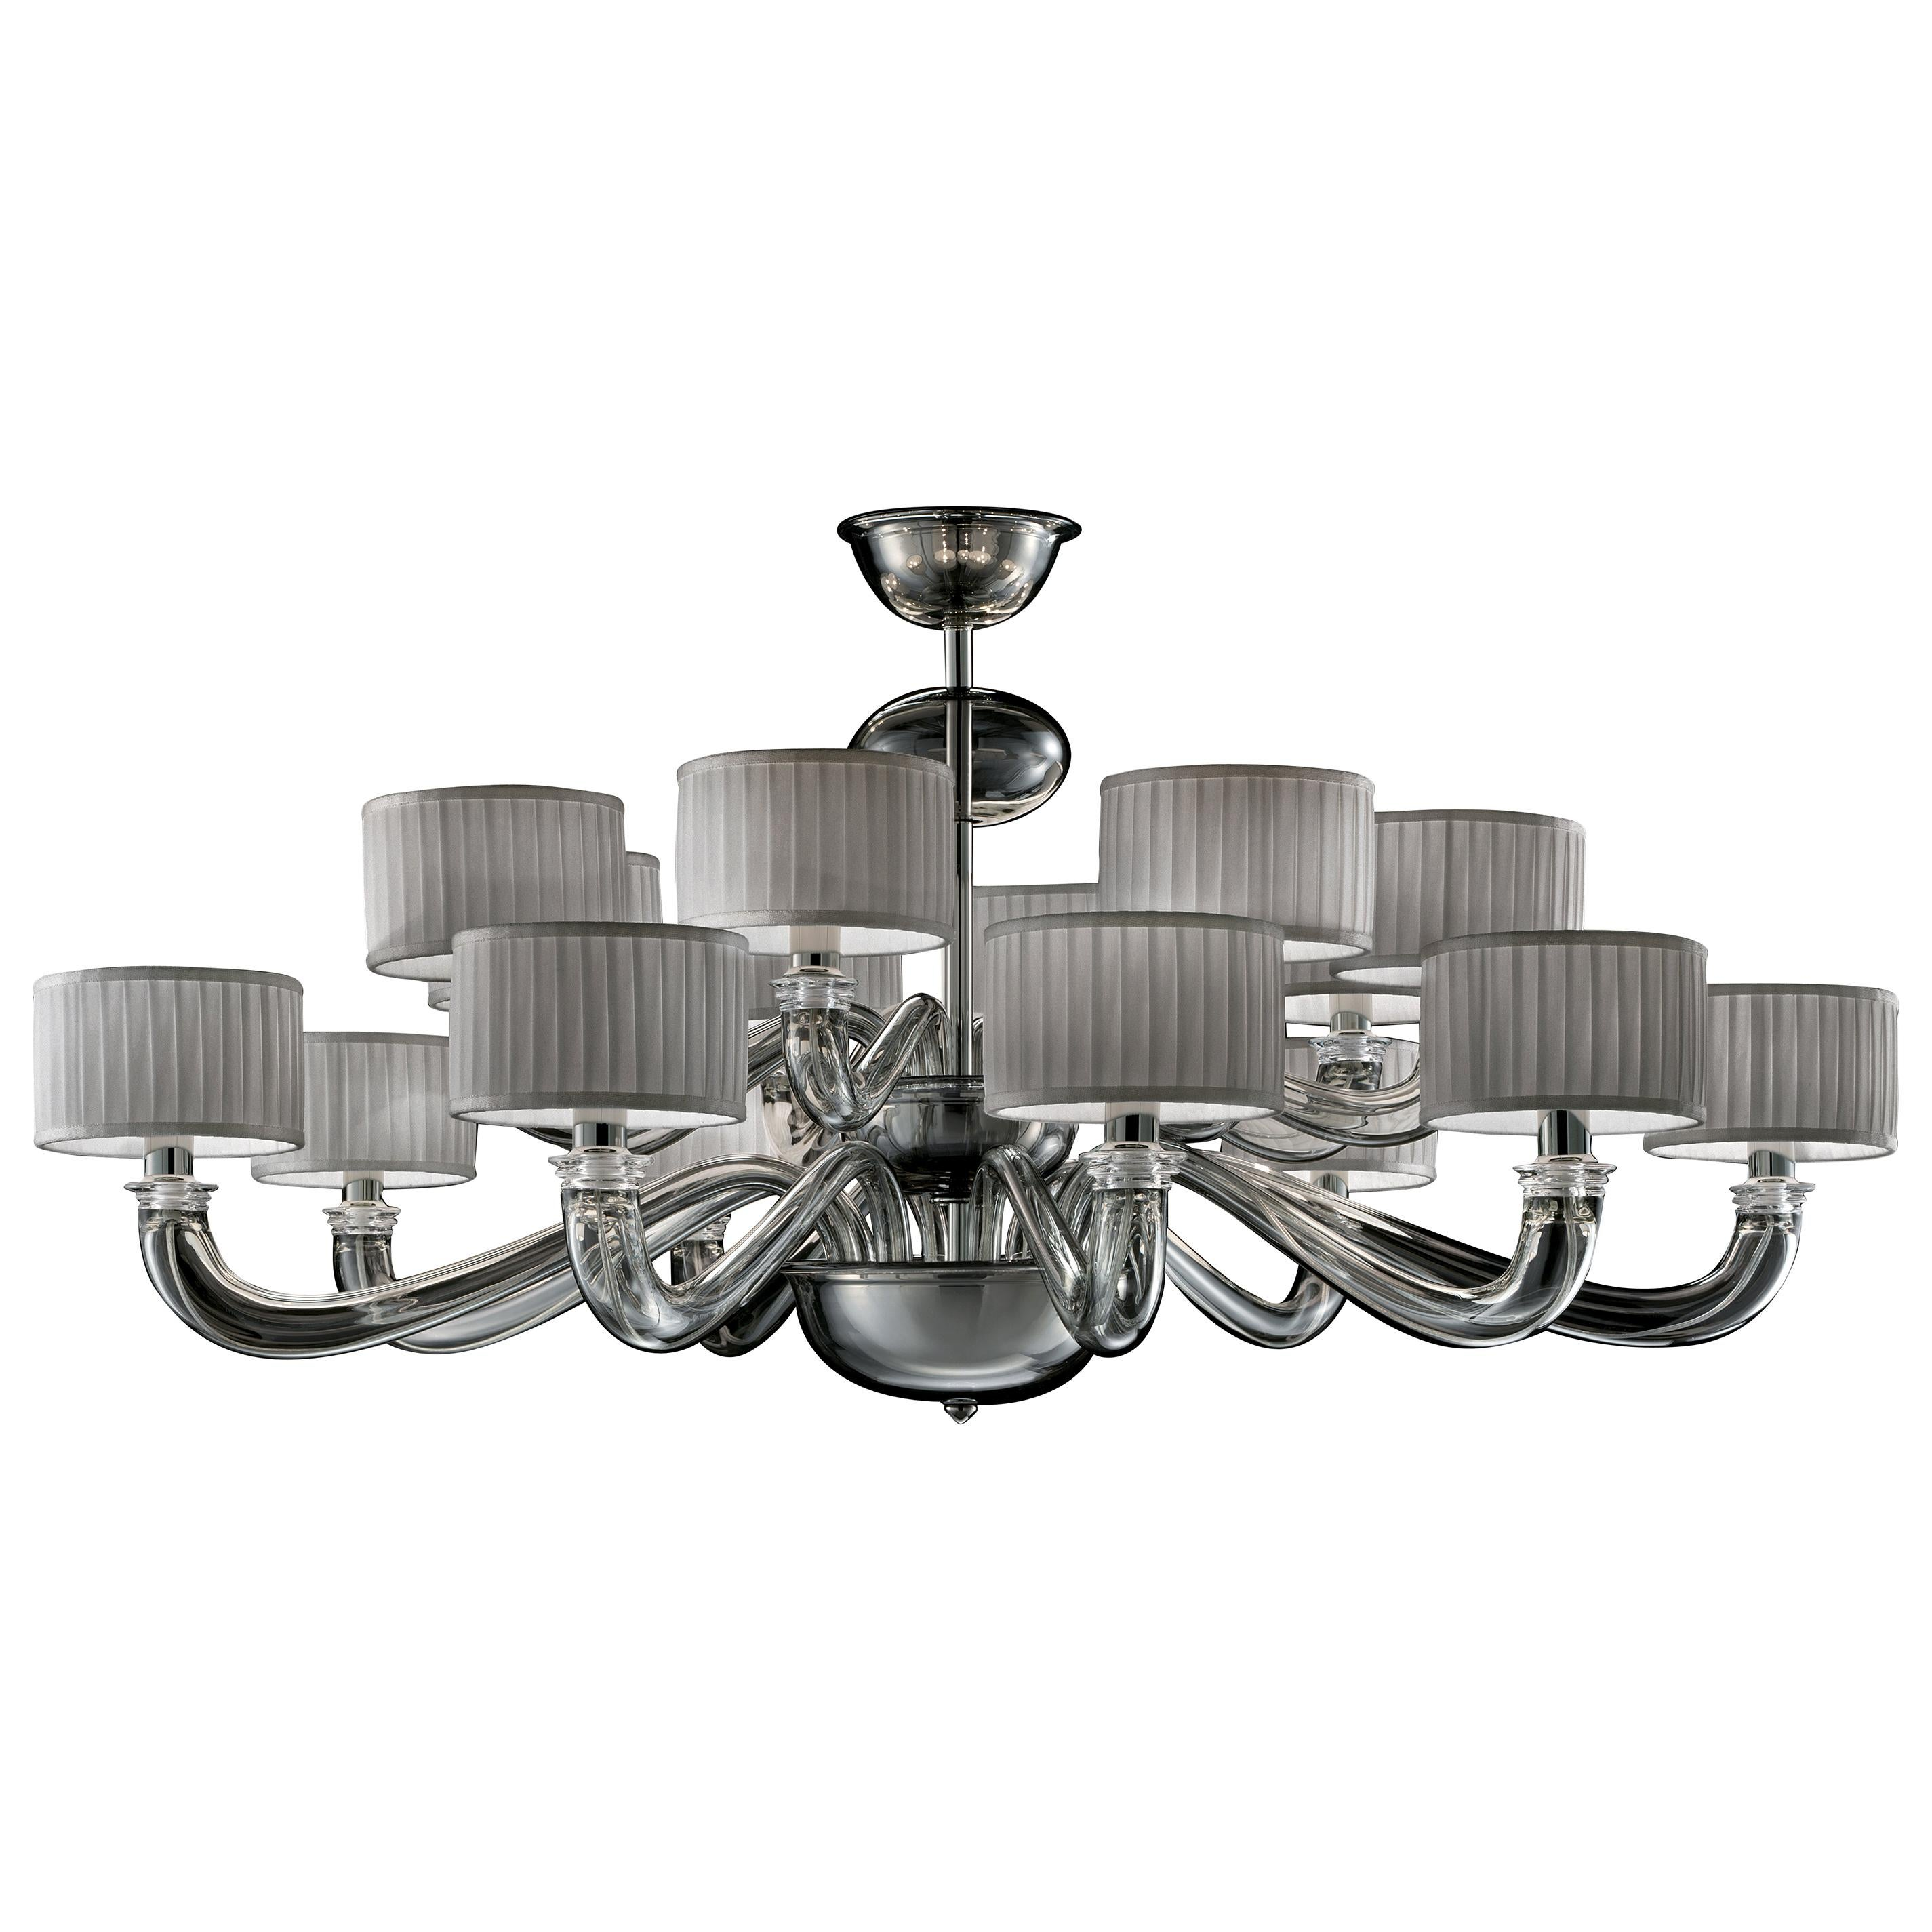 Alexandria 5597 16 Chandelier in Glass with Grey Shade, by Barovier&Toso